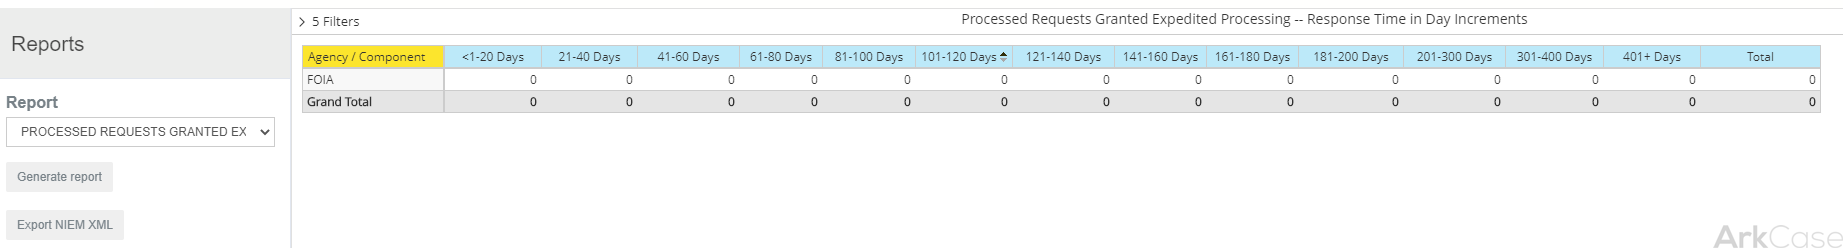 Processed Requests Granted Expedited Processing -- Response Time in Day Increments